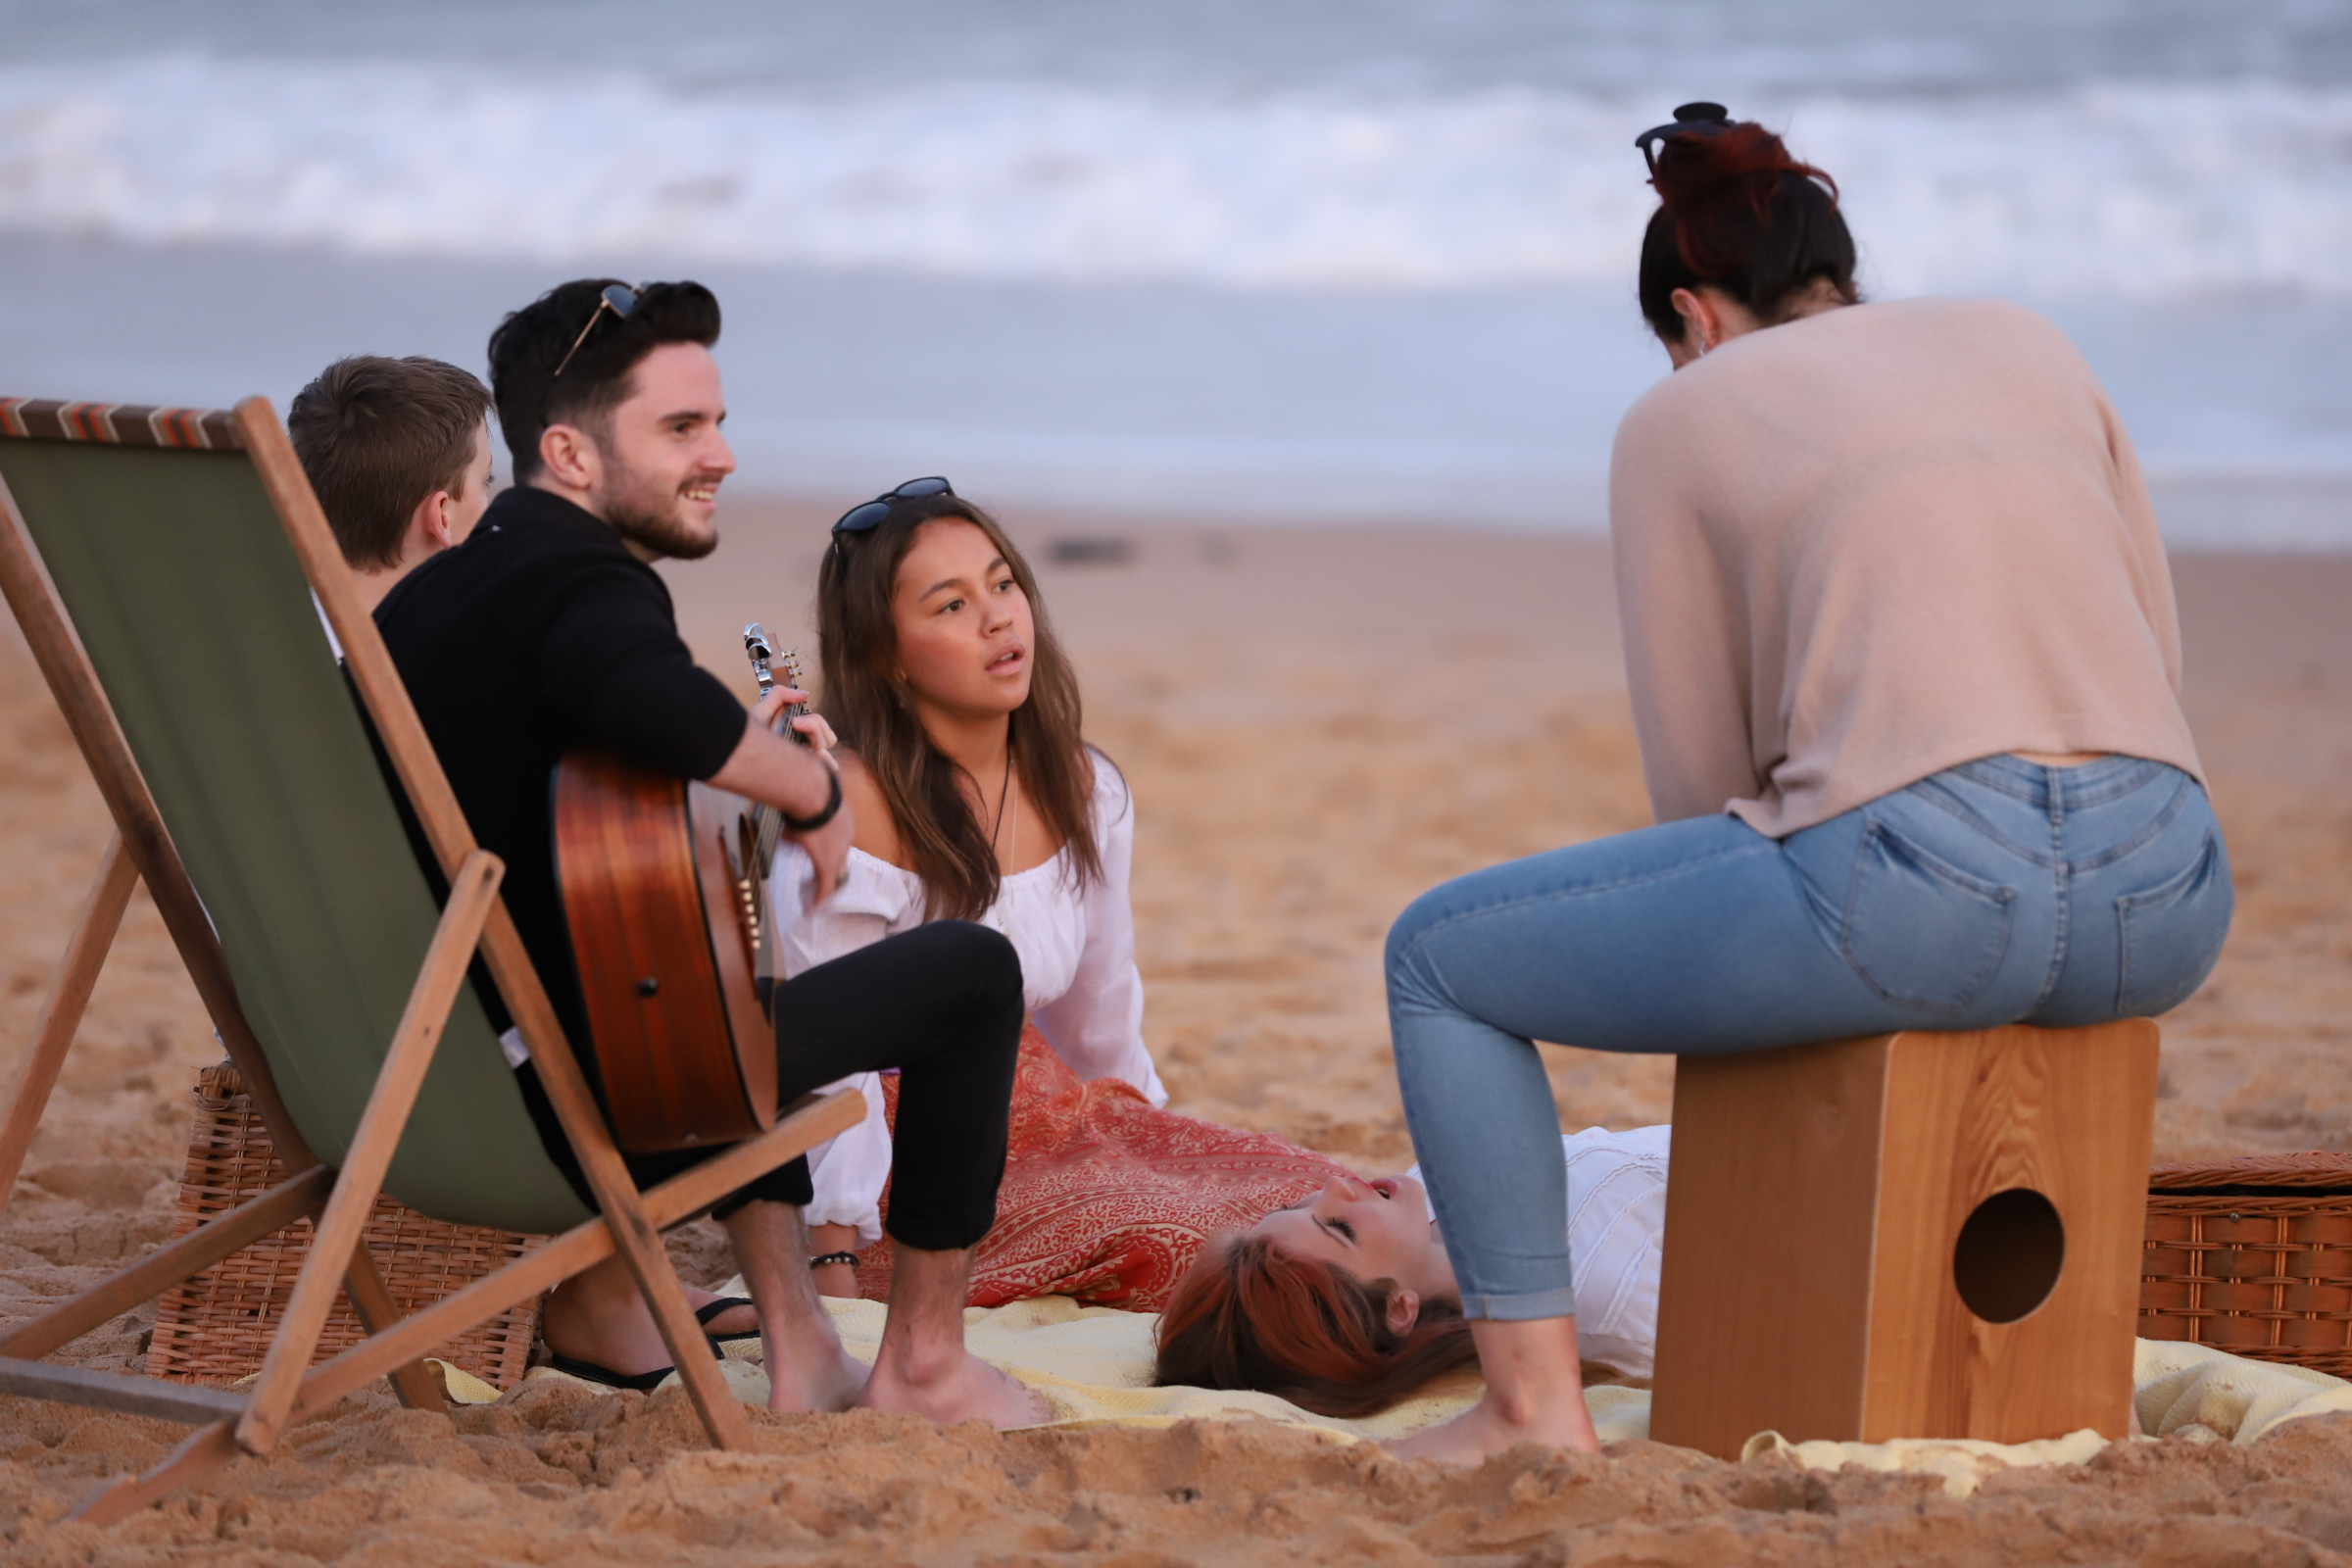 Playing Music on Beach